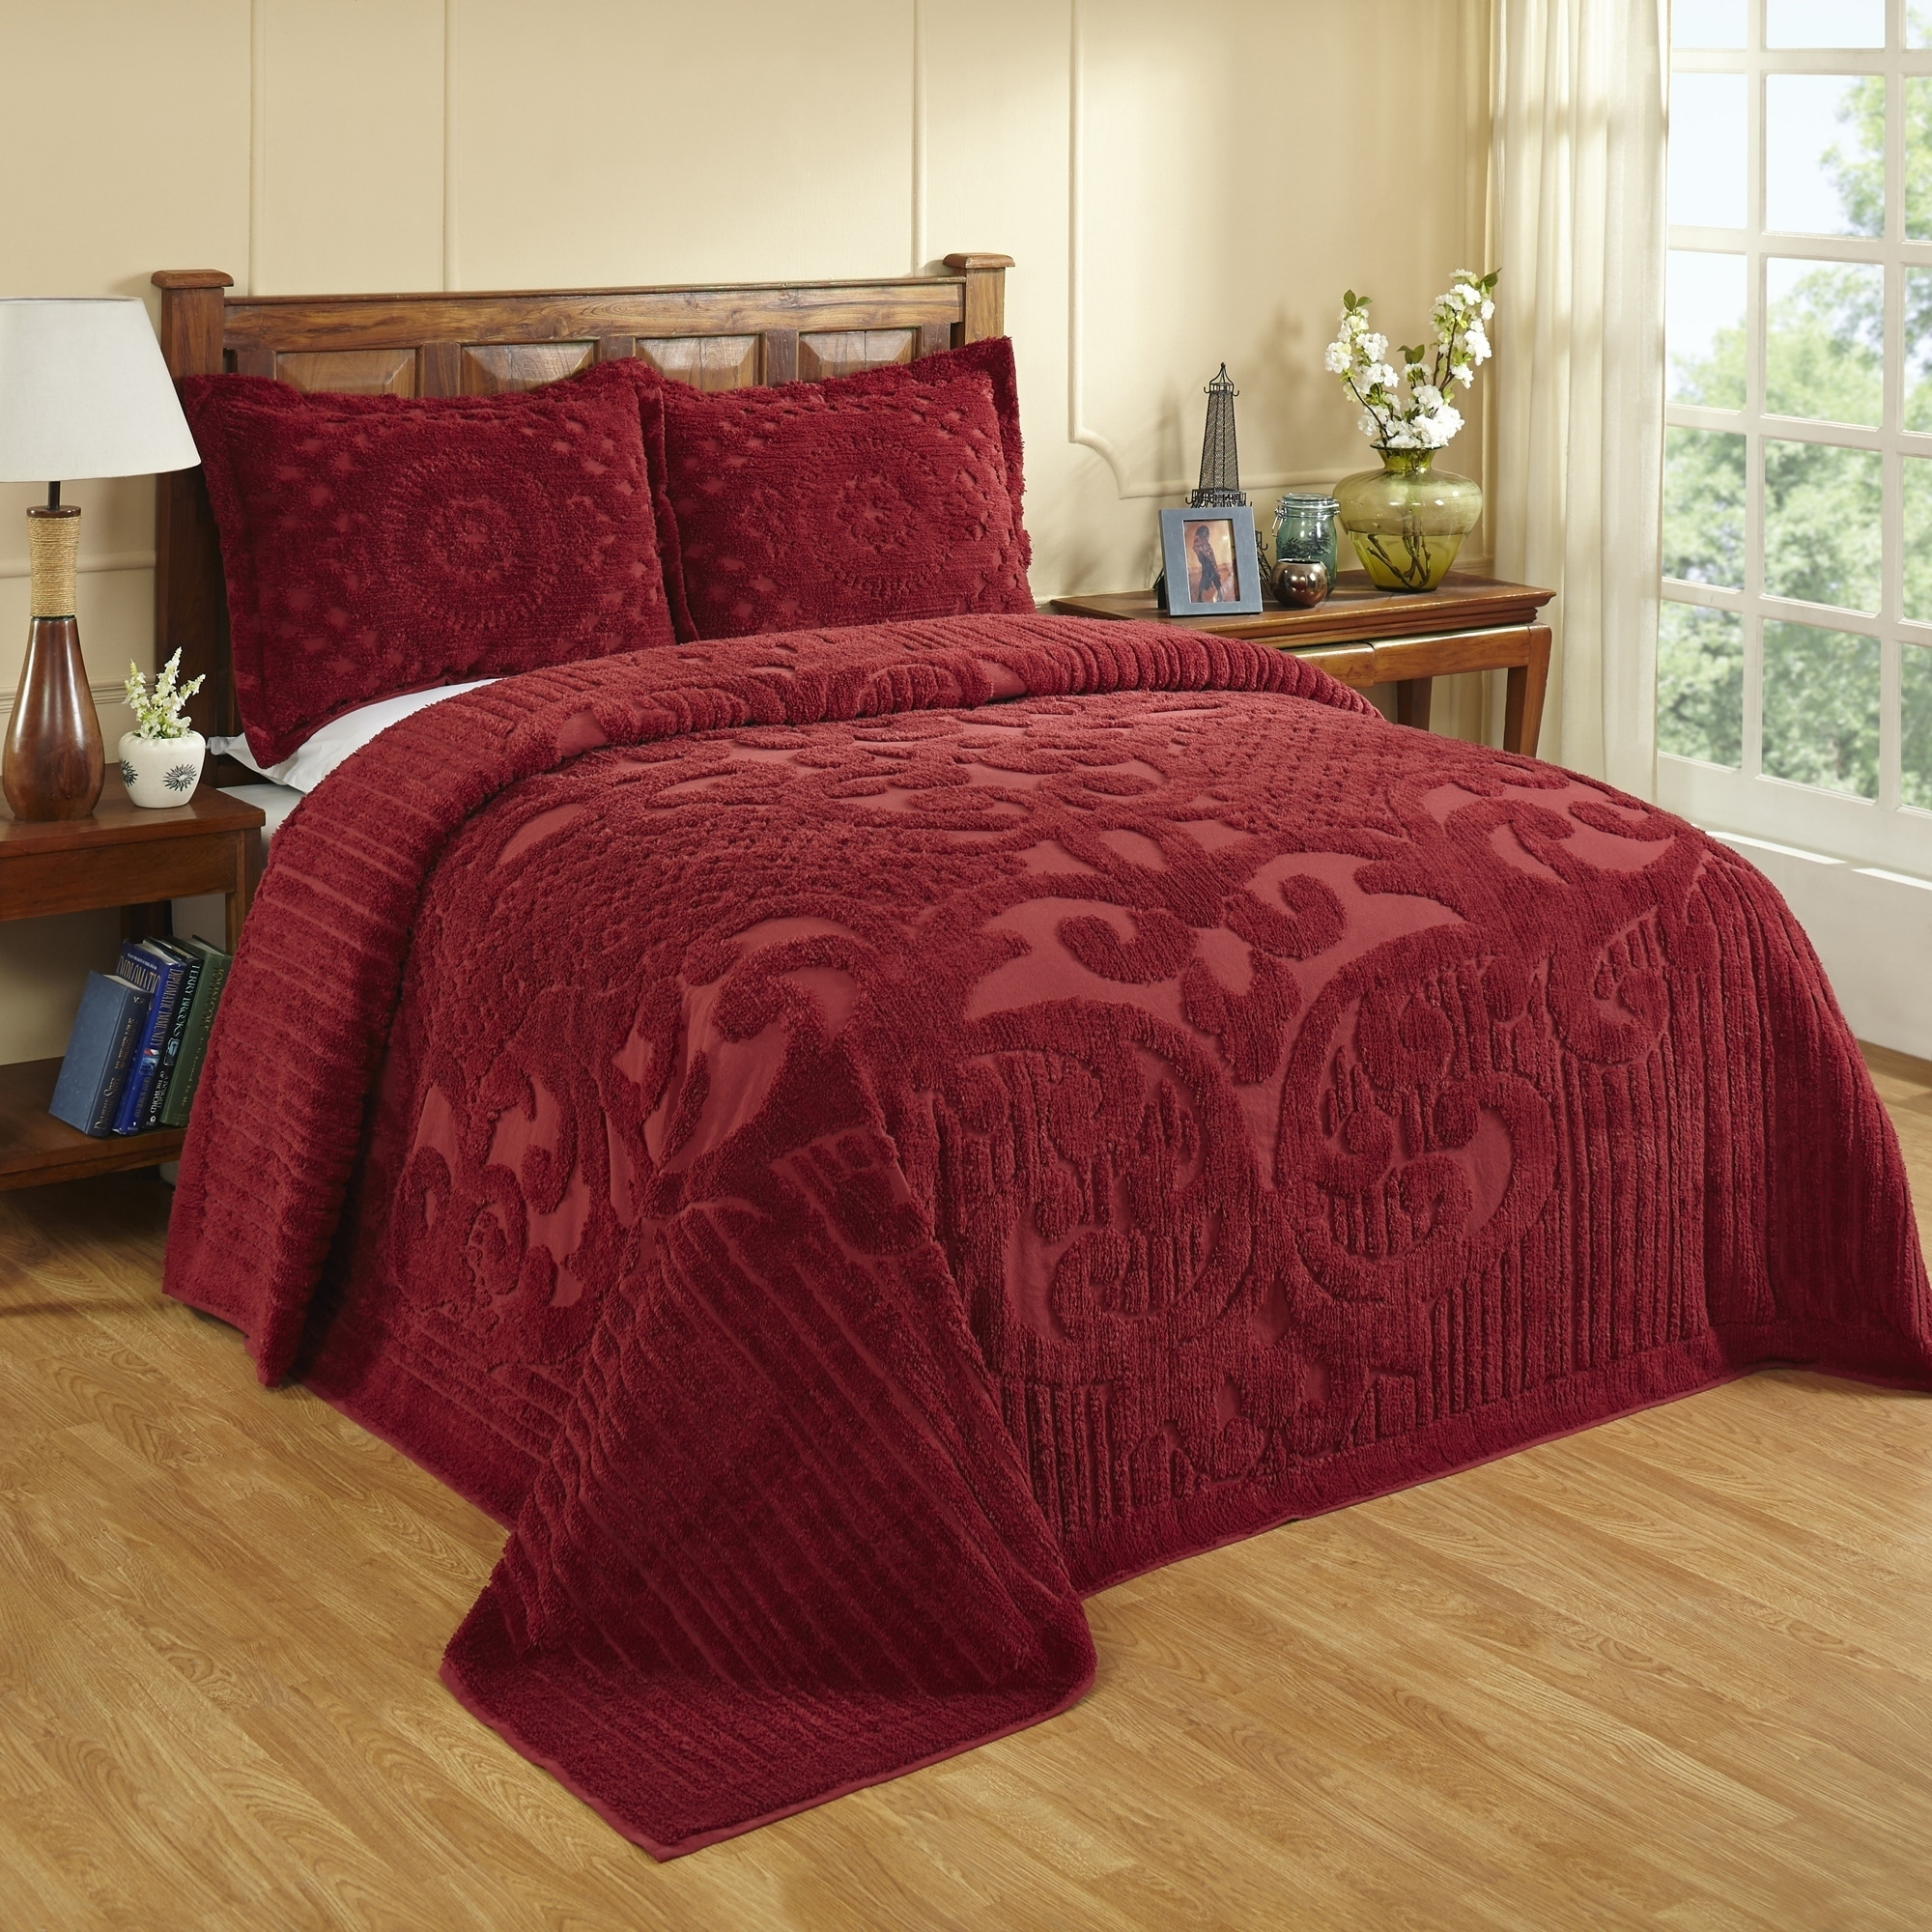 Ashton Double Bedspread 96X110 Teal